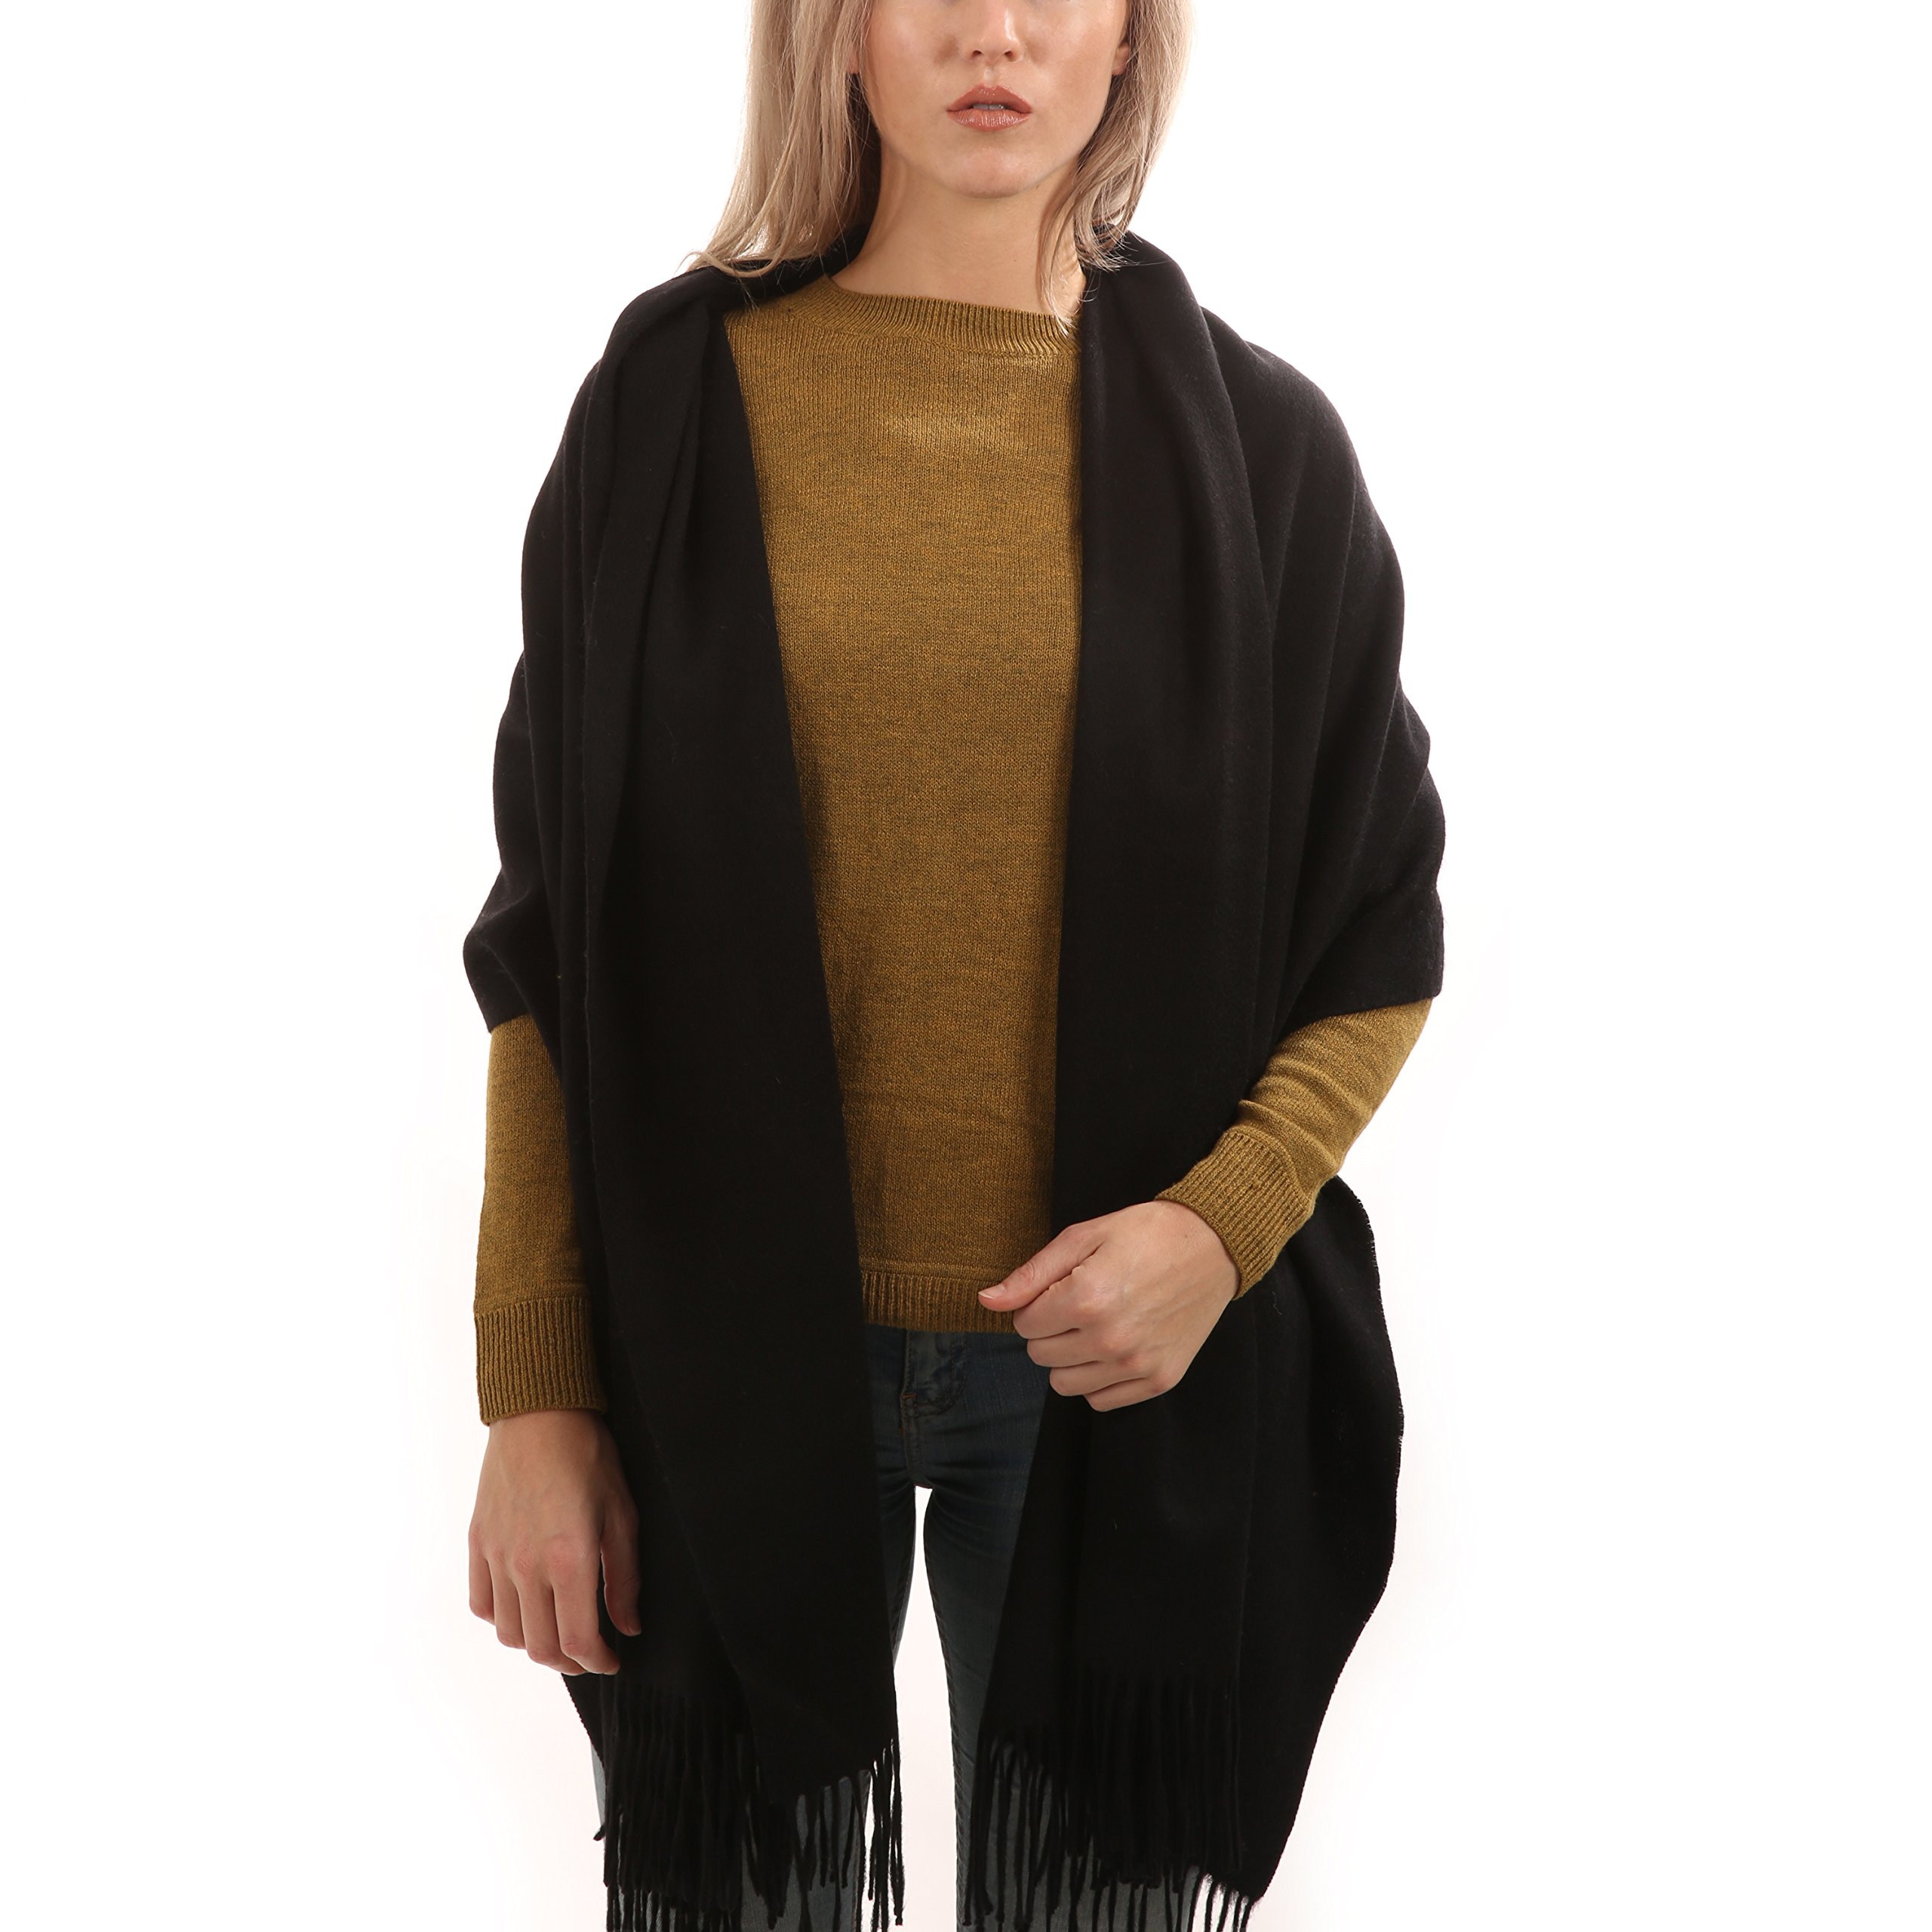 Cashmere Wool Scarf - Extra Large 28''x74'' - for Men and Women (Black)